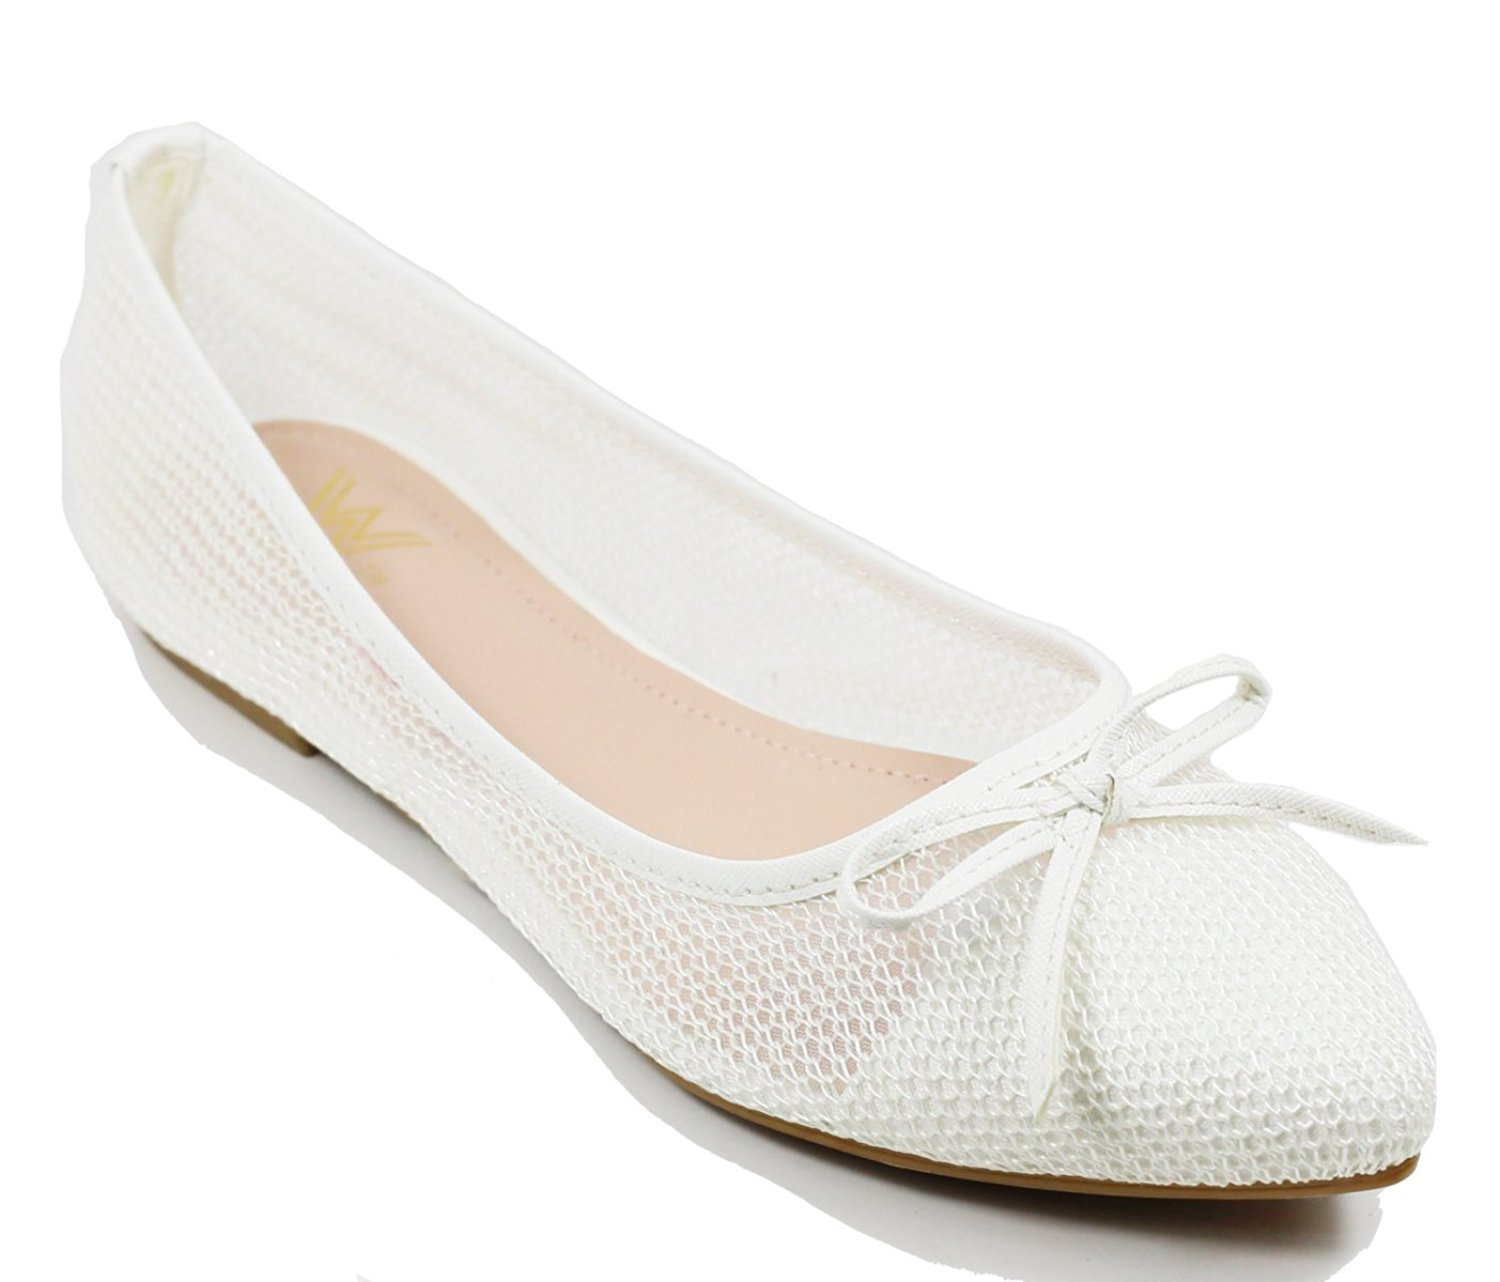 Walstar wedding shoes for bride Flat Shoes Mesh Flat Shoes